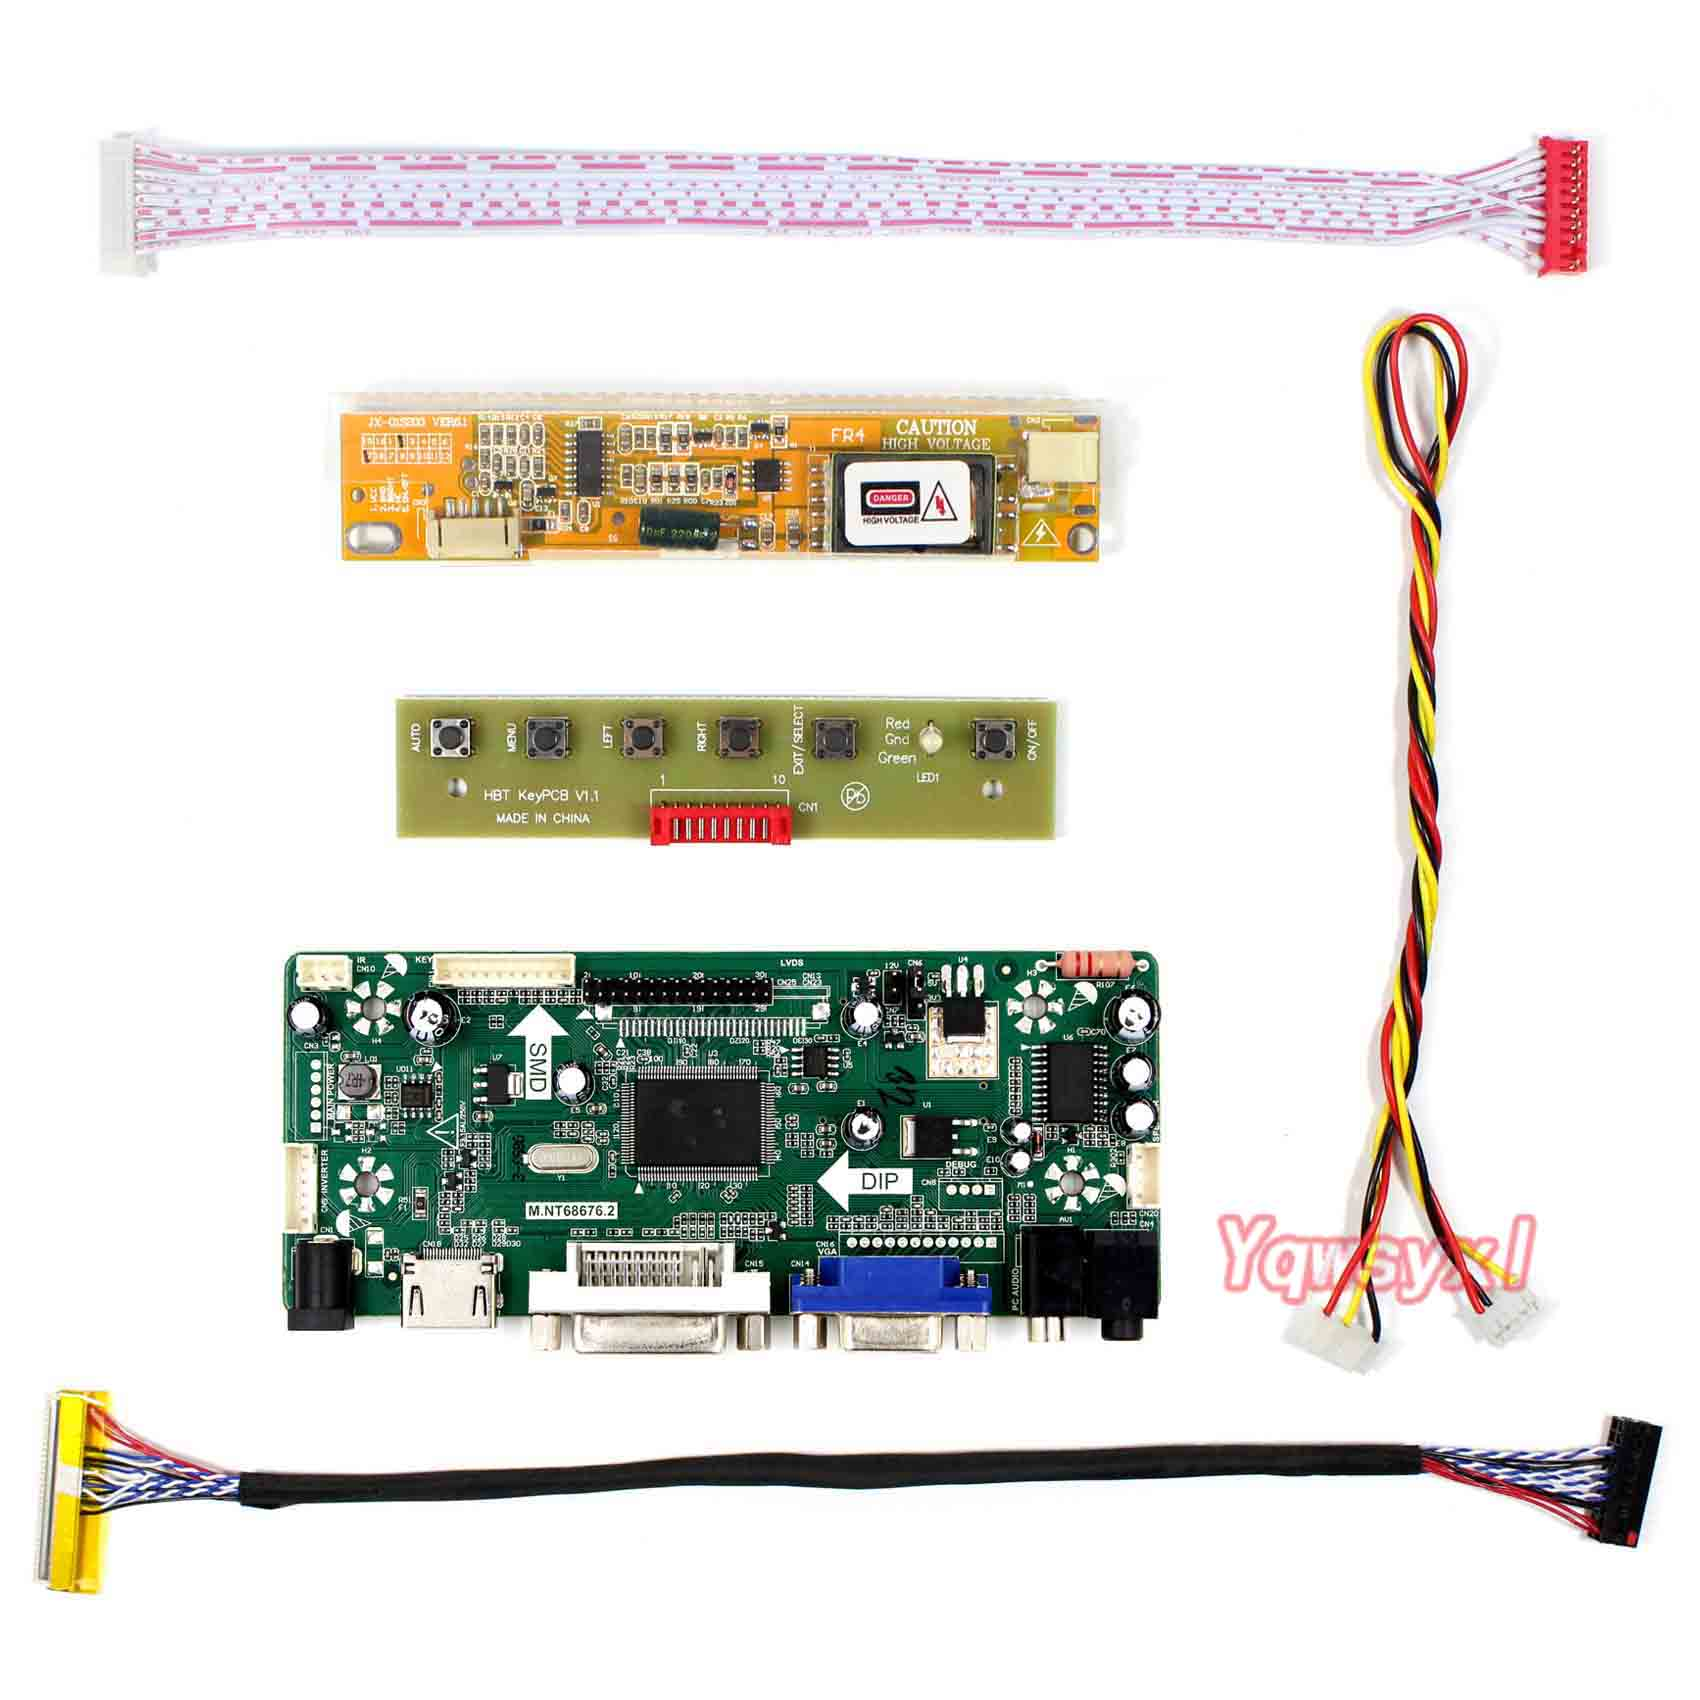 Yqwsyxl Control Board Monitor Kit For B154EW08 LTN154AT01 LTN154AT07  HDMI+DVI+VGA LCD LED Screen Controller Board Driver